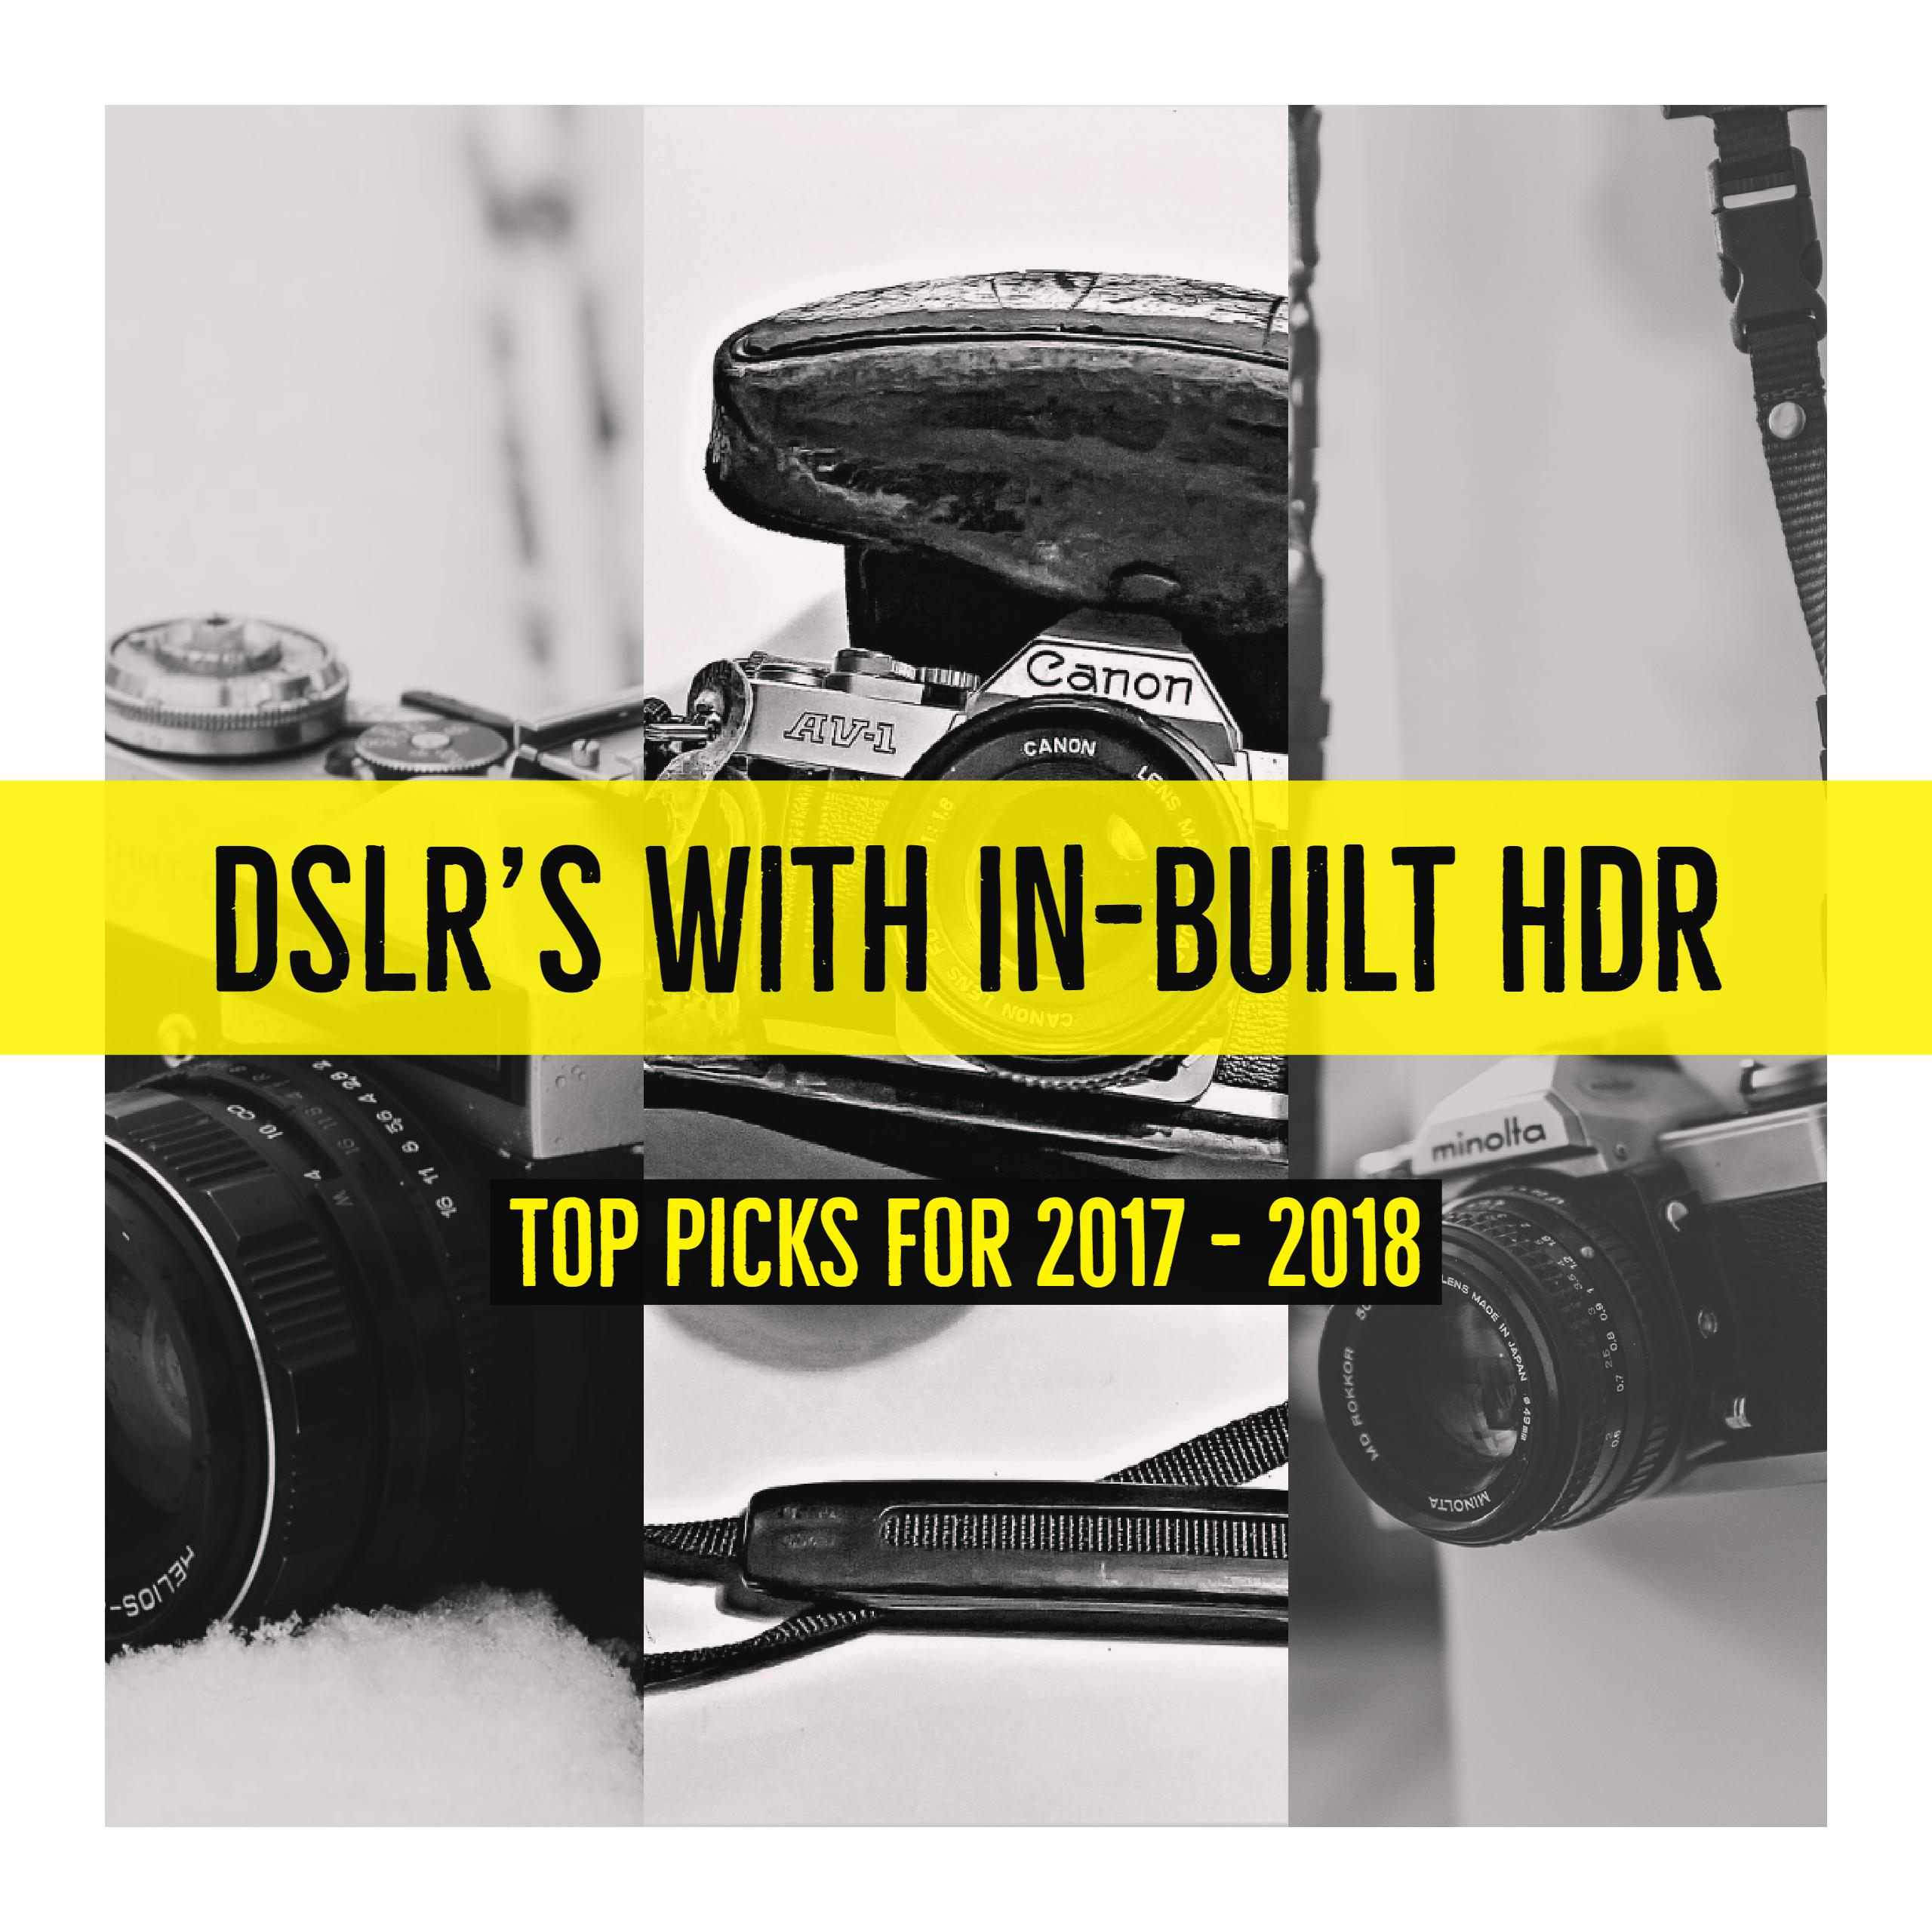 DSLR Cameras with Built In HDR